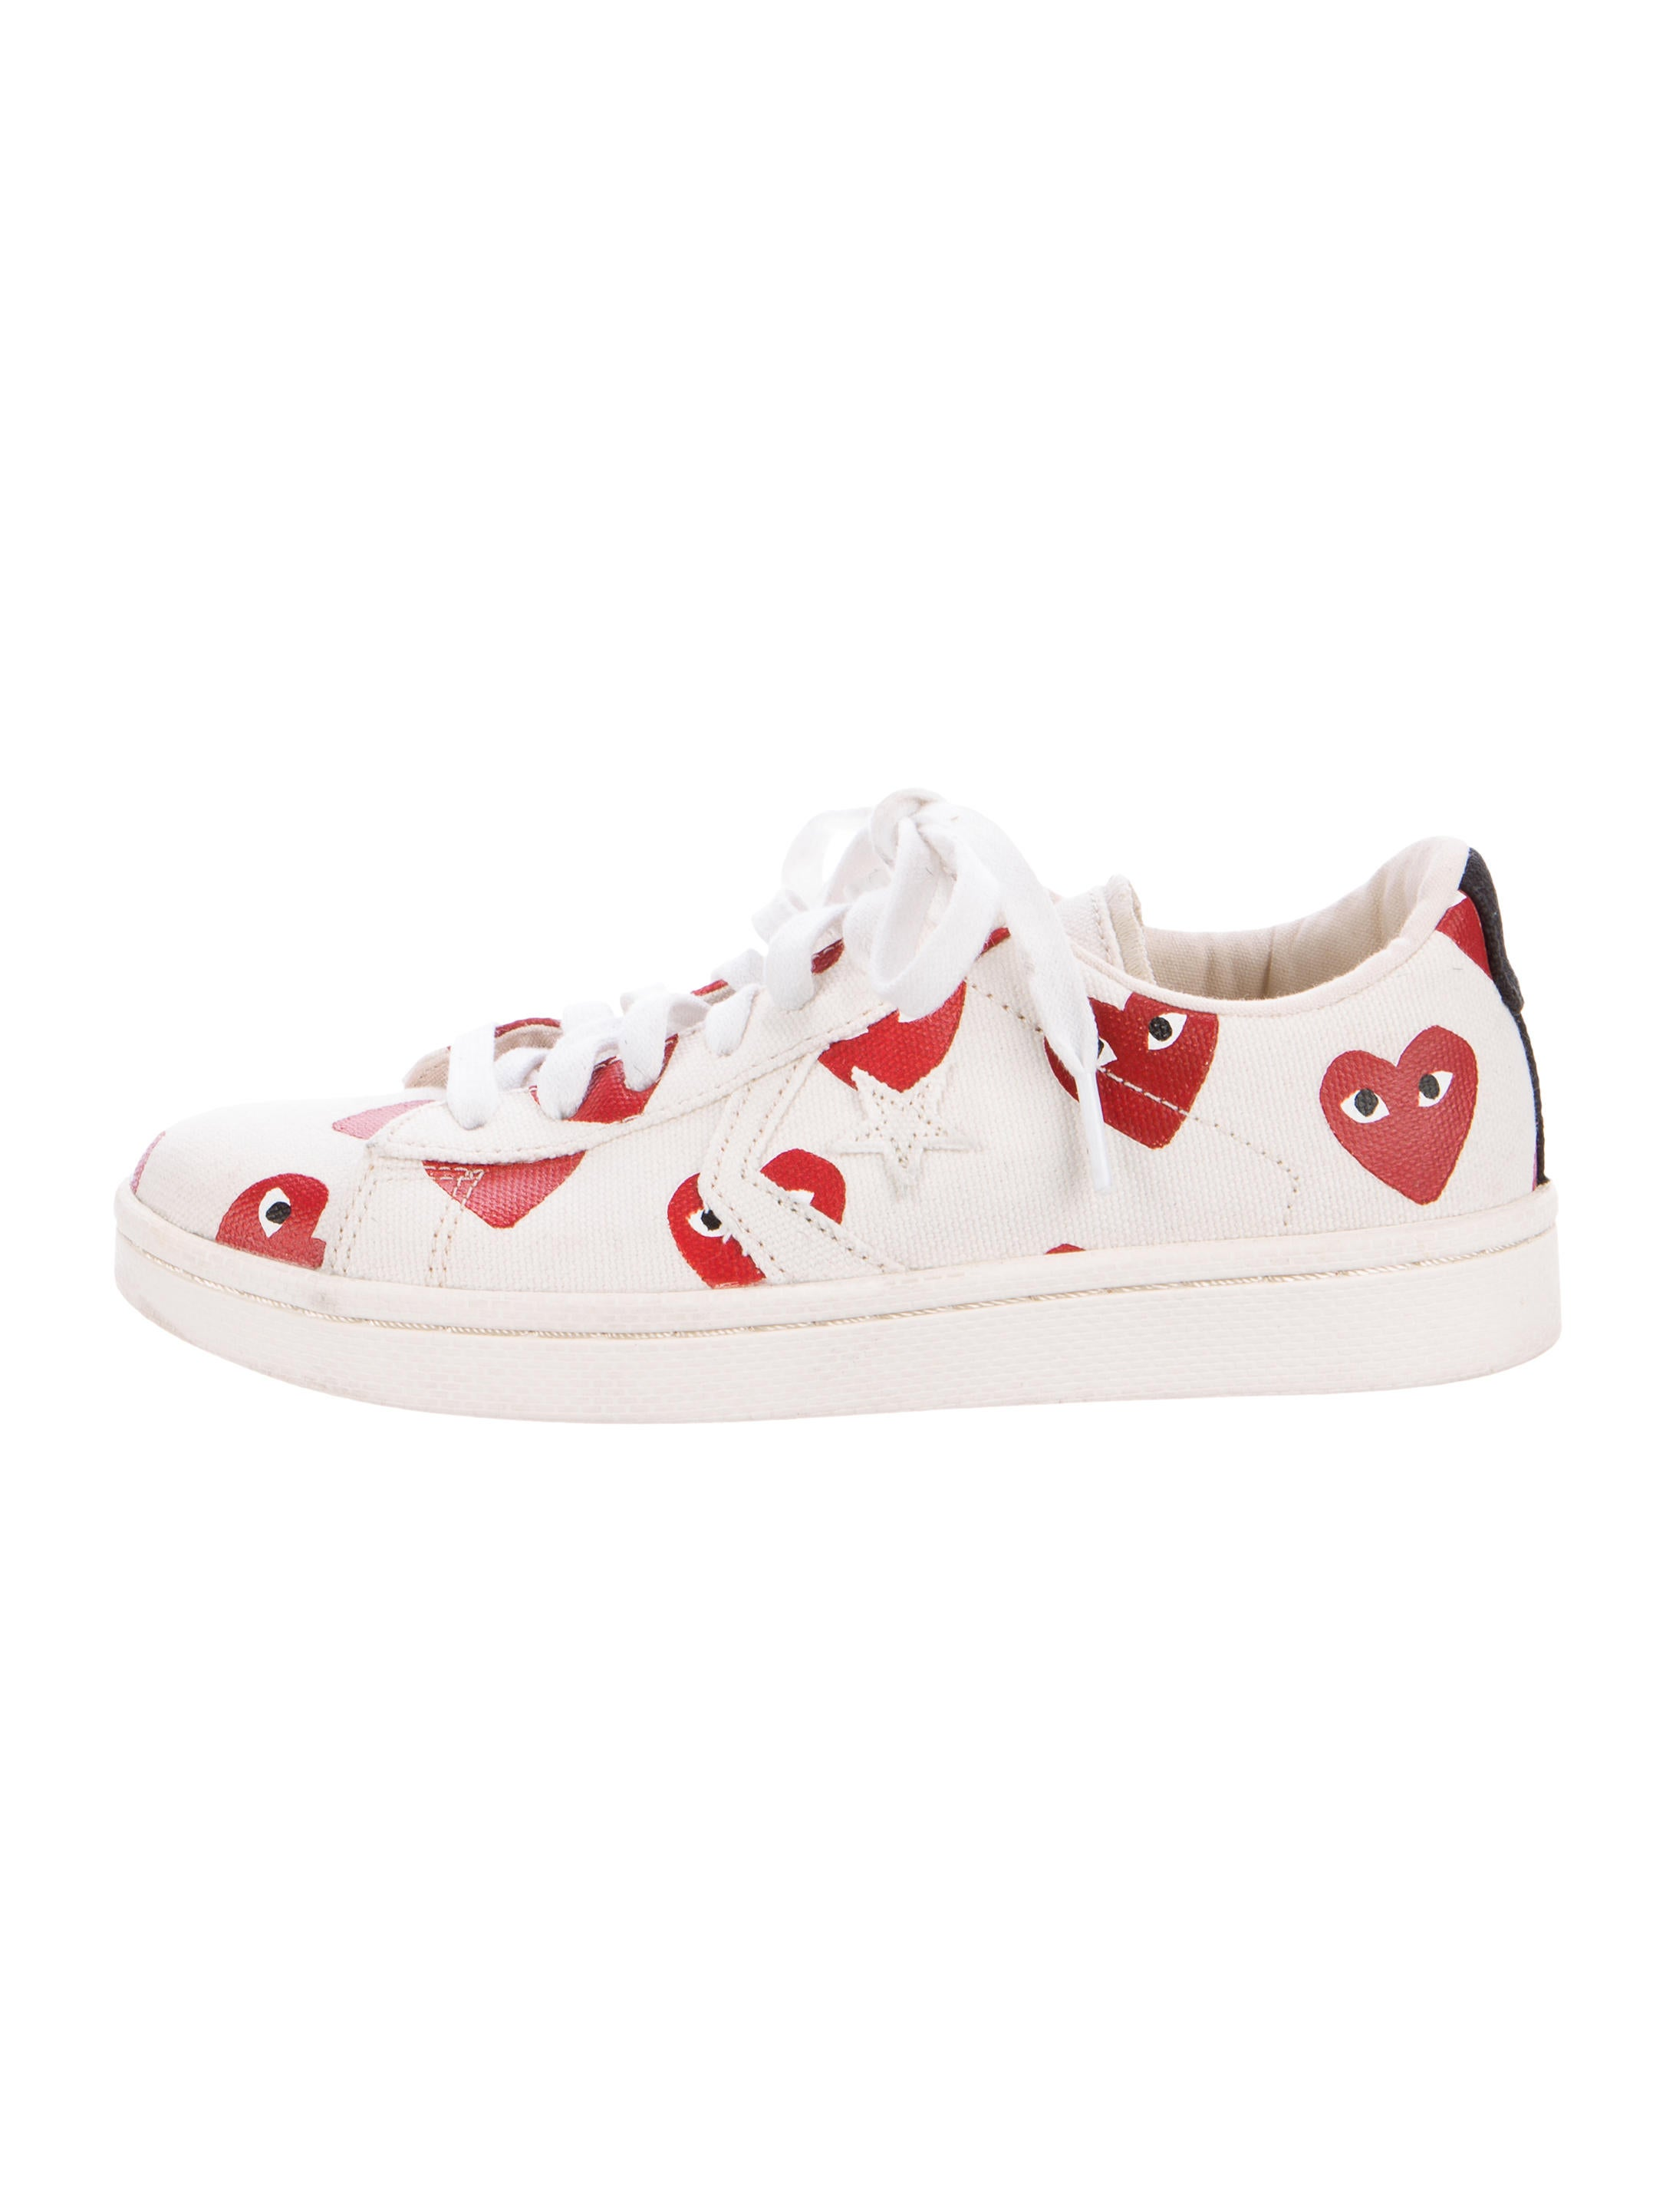 7e37dd9d142a ... Comme des Garçons Play x Converse Canvas Heart Sneakers. Canvas Heart  Sneakers